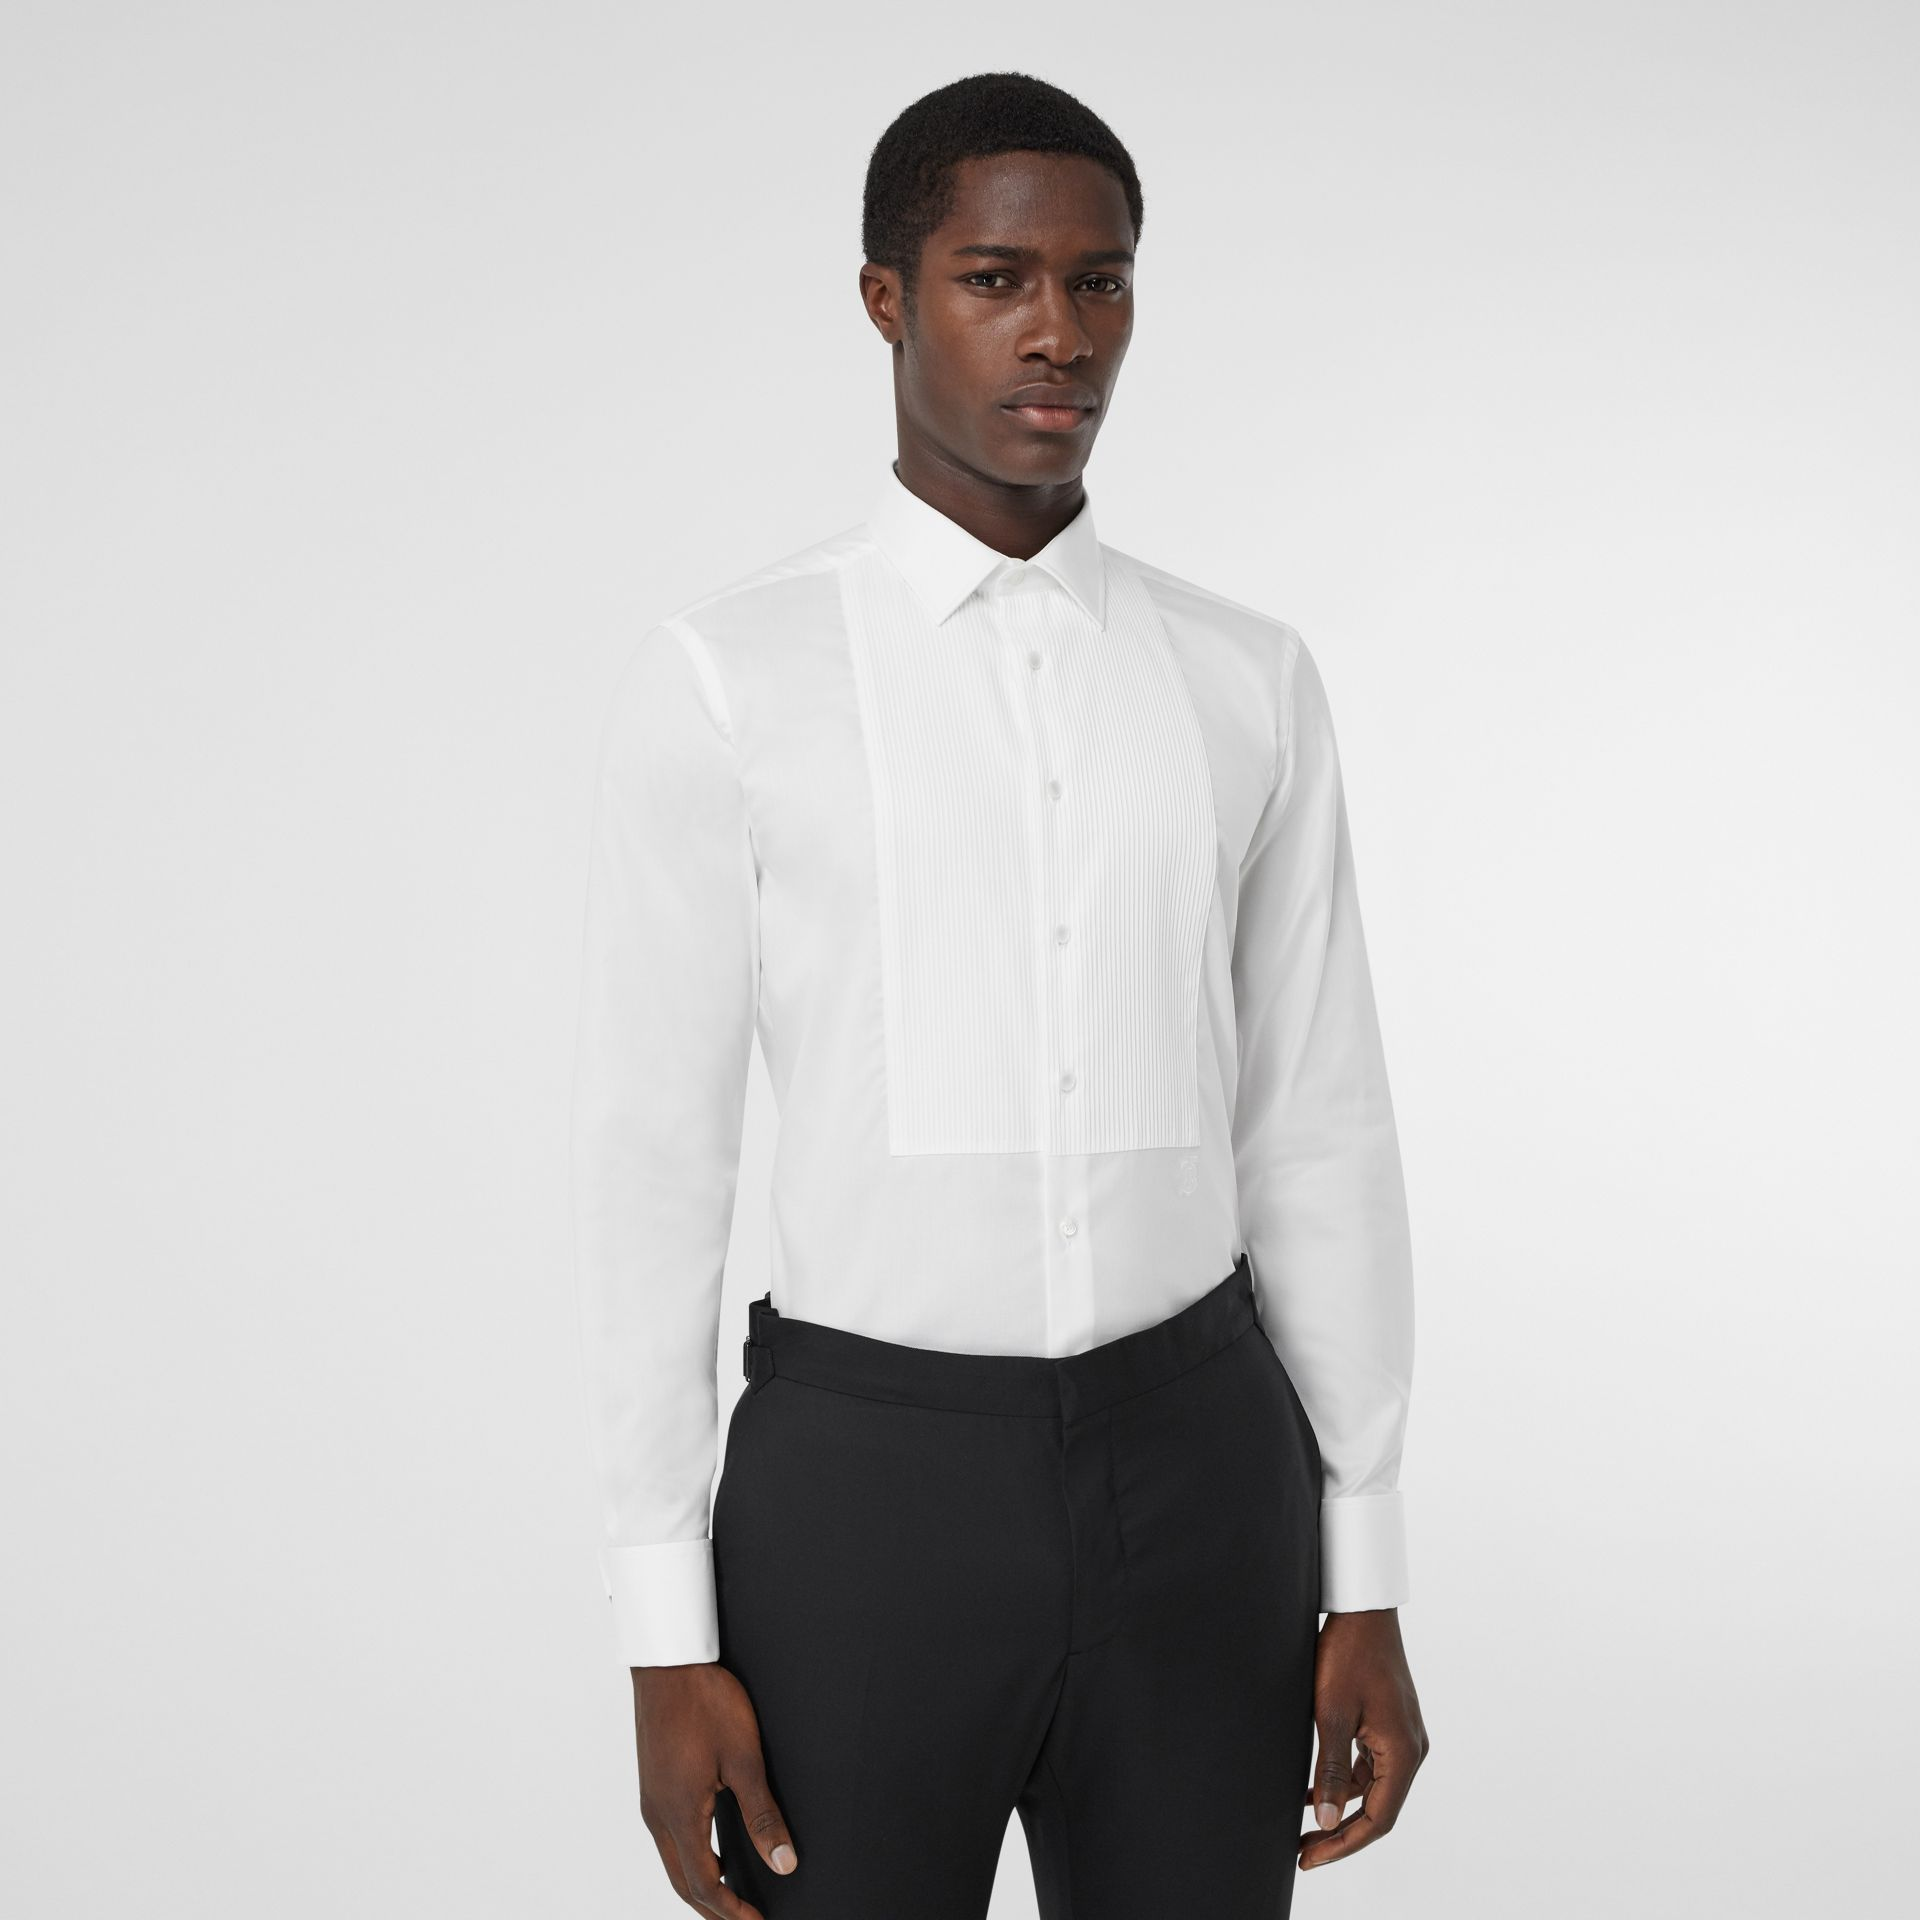 Ribbed Bib Cotton Oxford Dress Shirt in White - Men | Burberry - gallery image 6